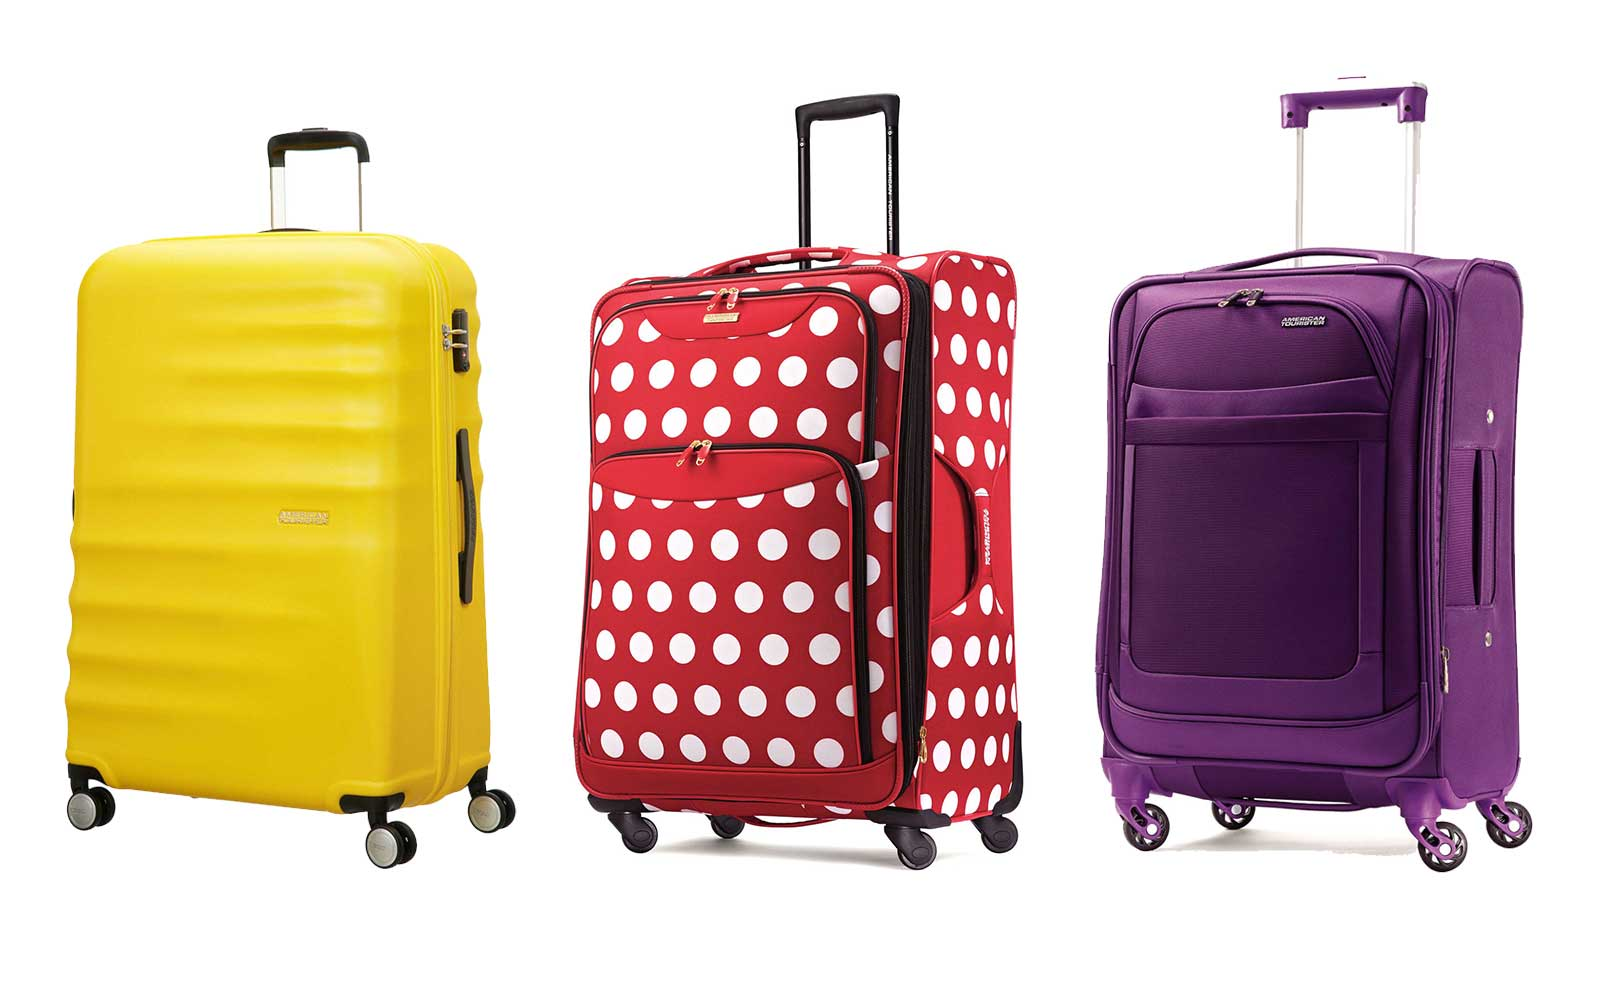 American Tourister Luggage and Suitcases